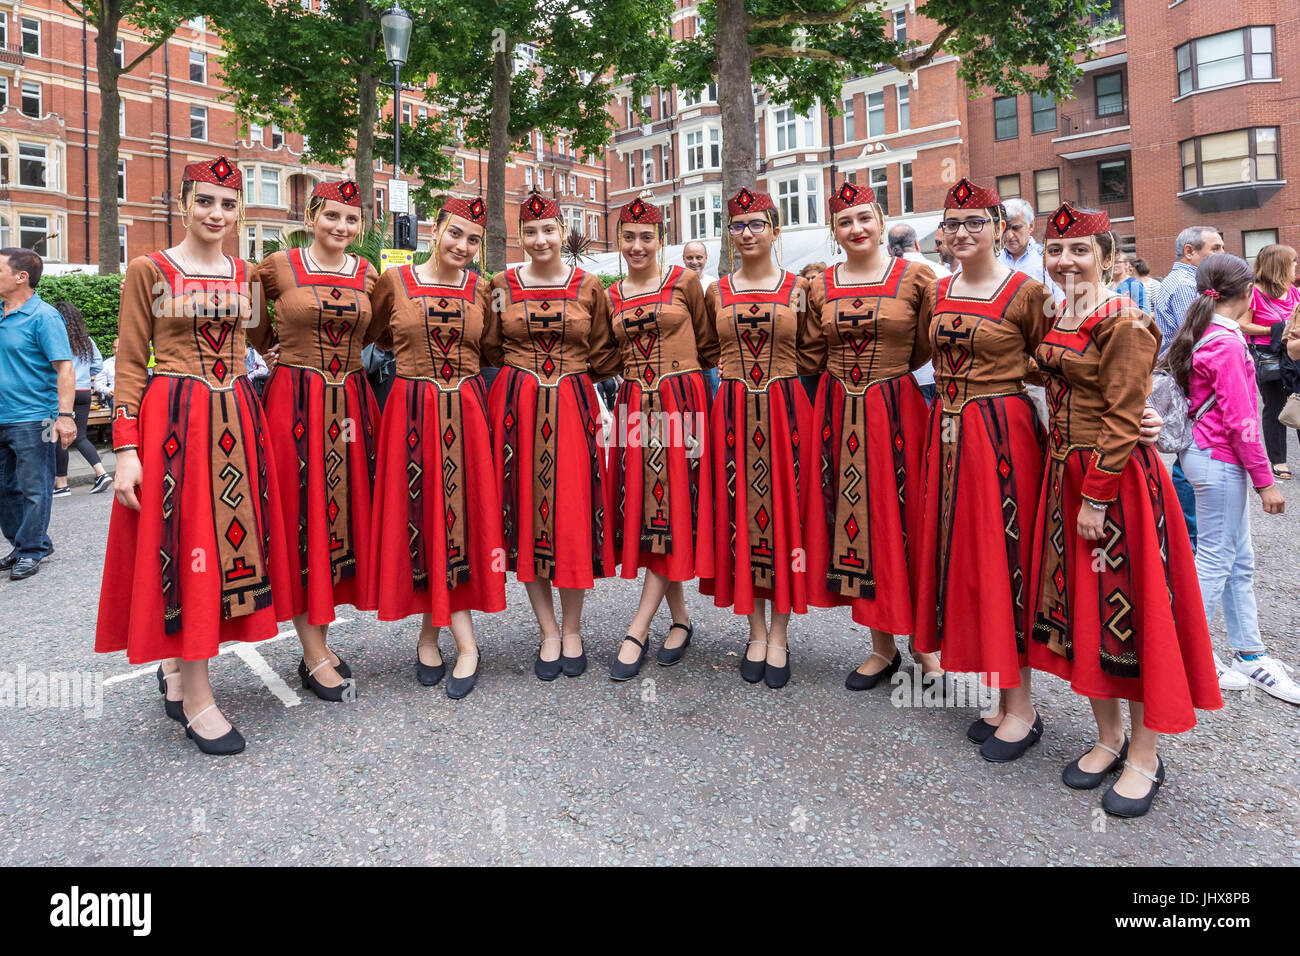 London, UK. 16th July, 2017. Dancers perform at the 7th Armenian Street Festival. © Guy Corbishley/Alamy Live News Stock Photo